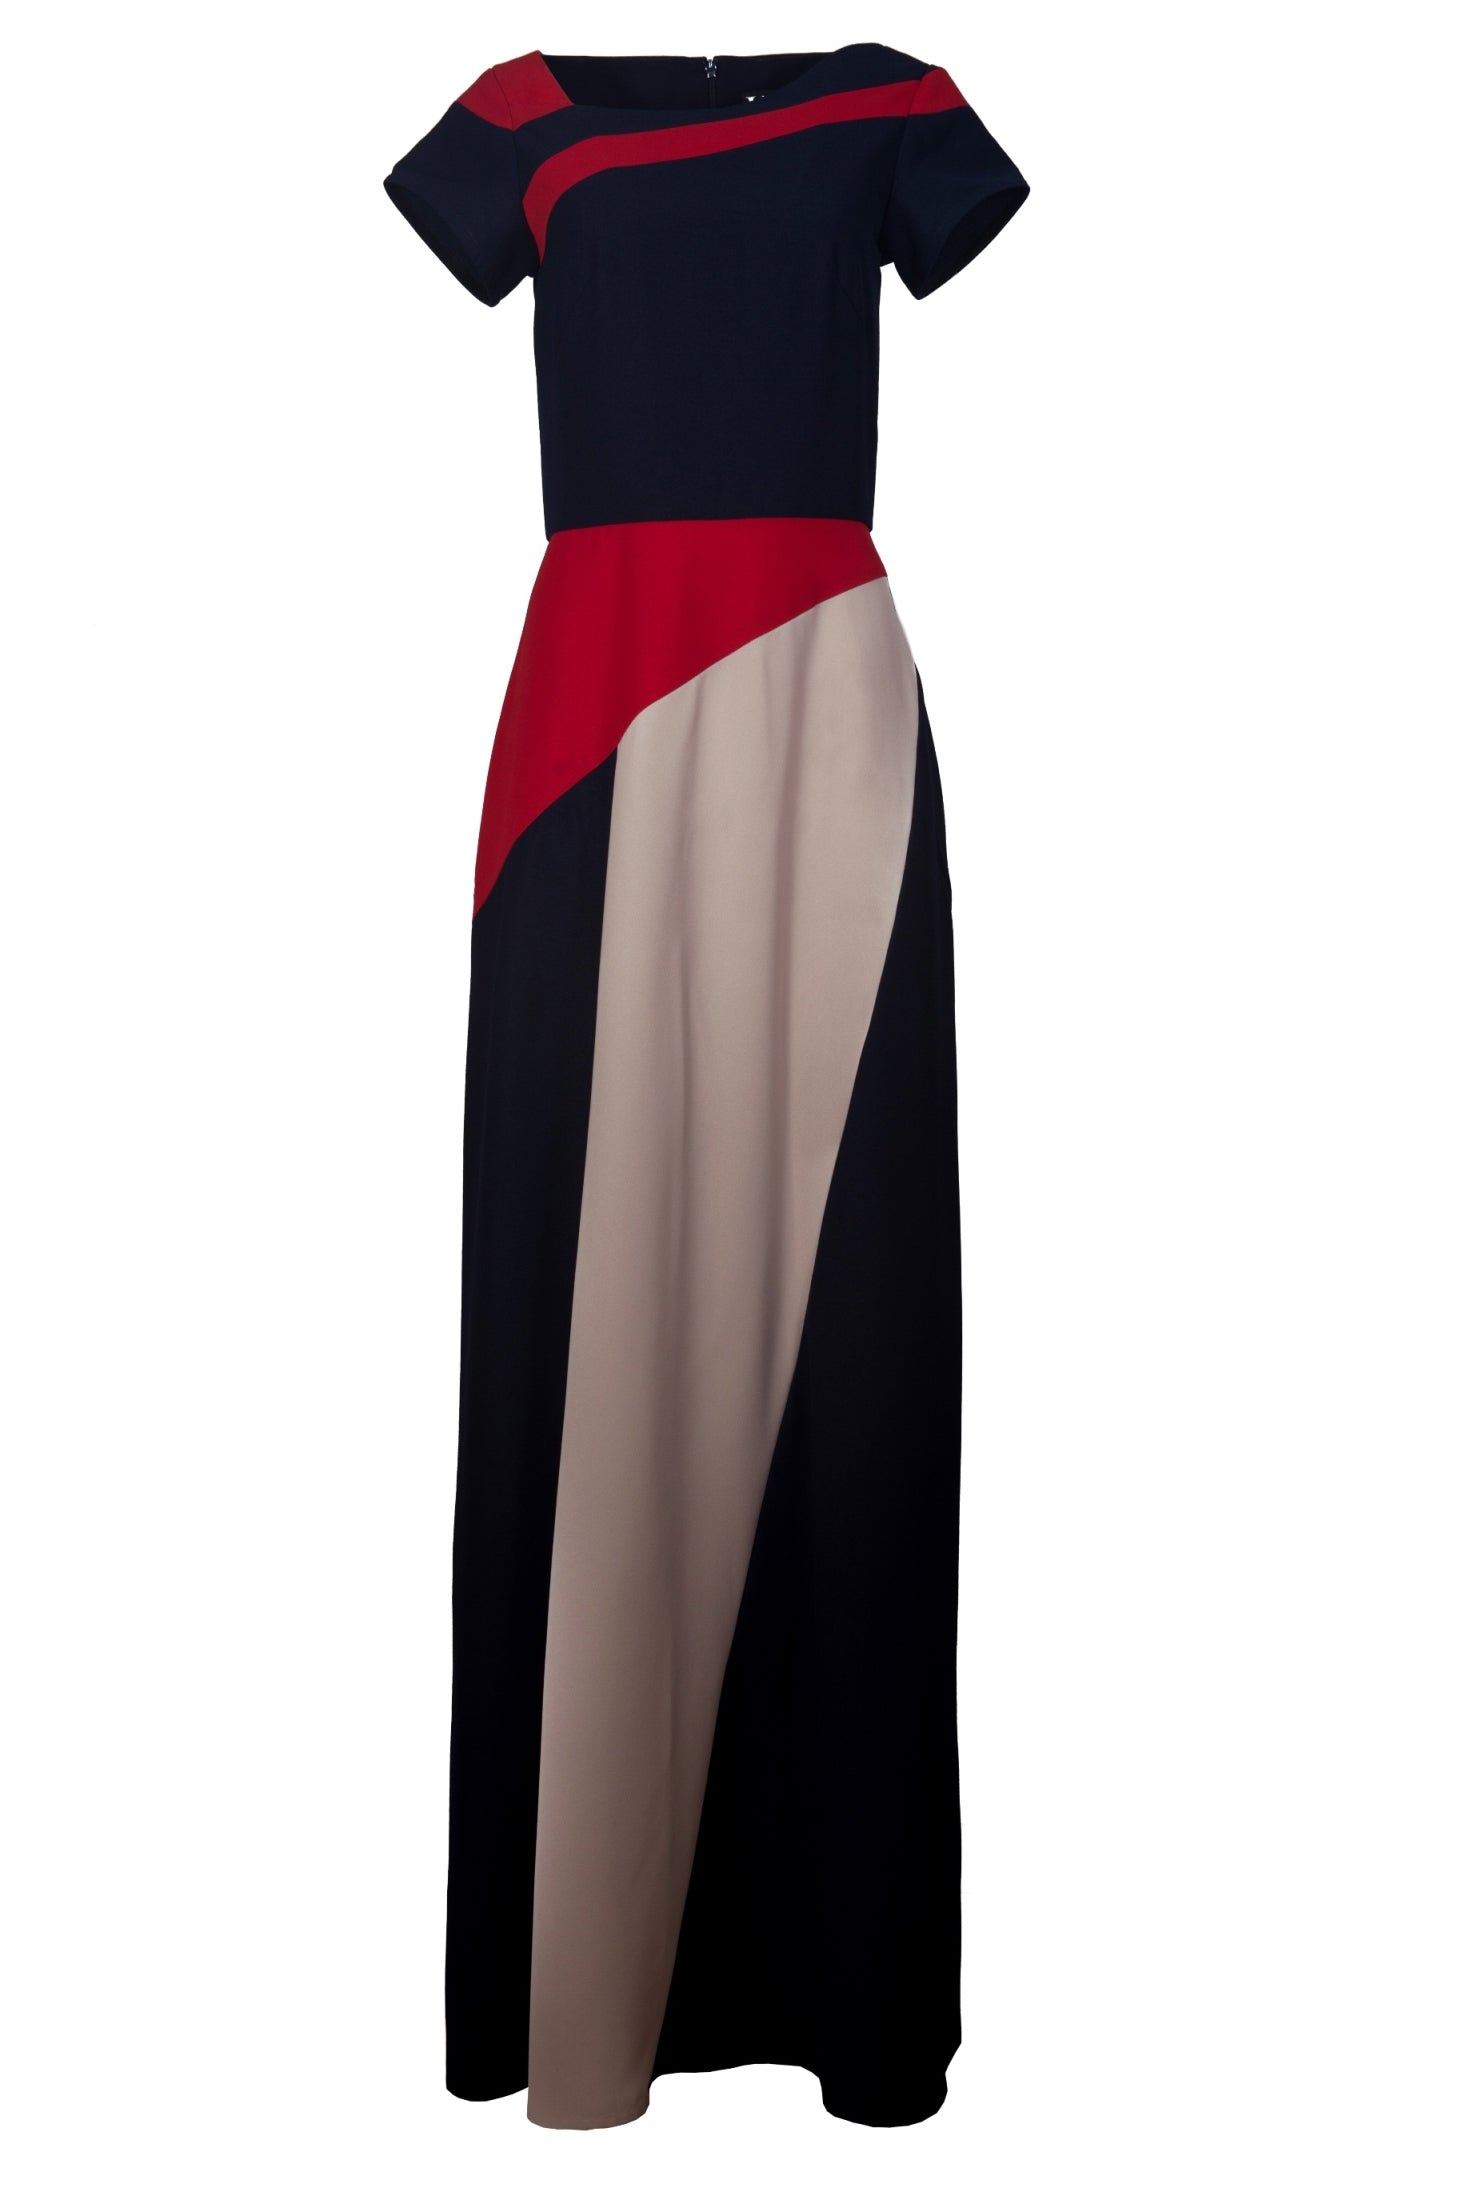 Eugina Maxi Dress - VeRaf Clothing